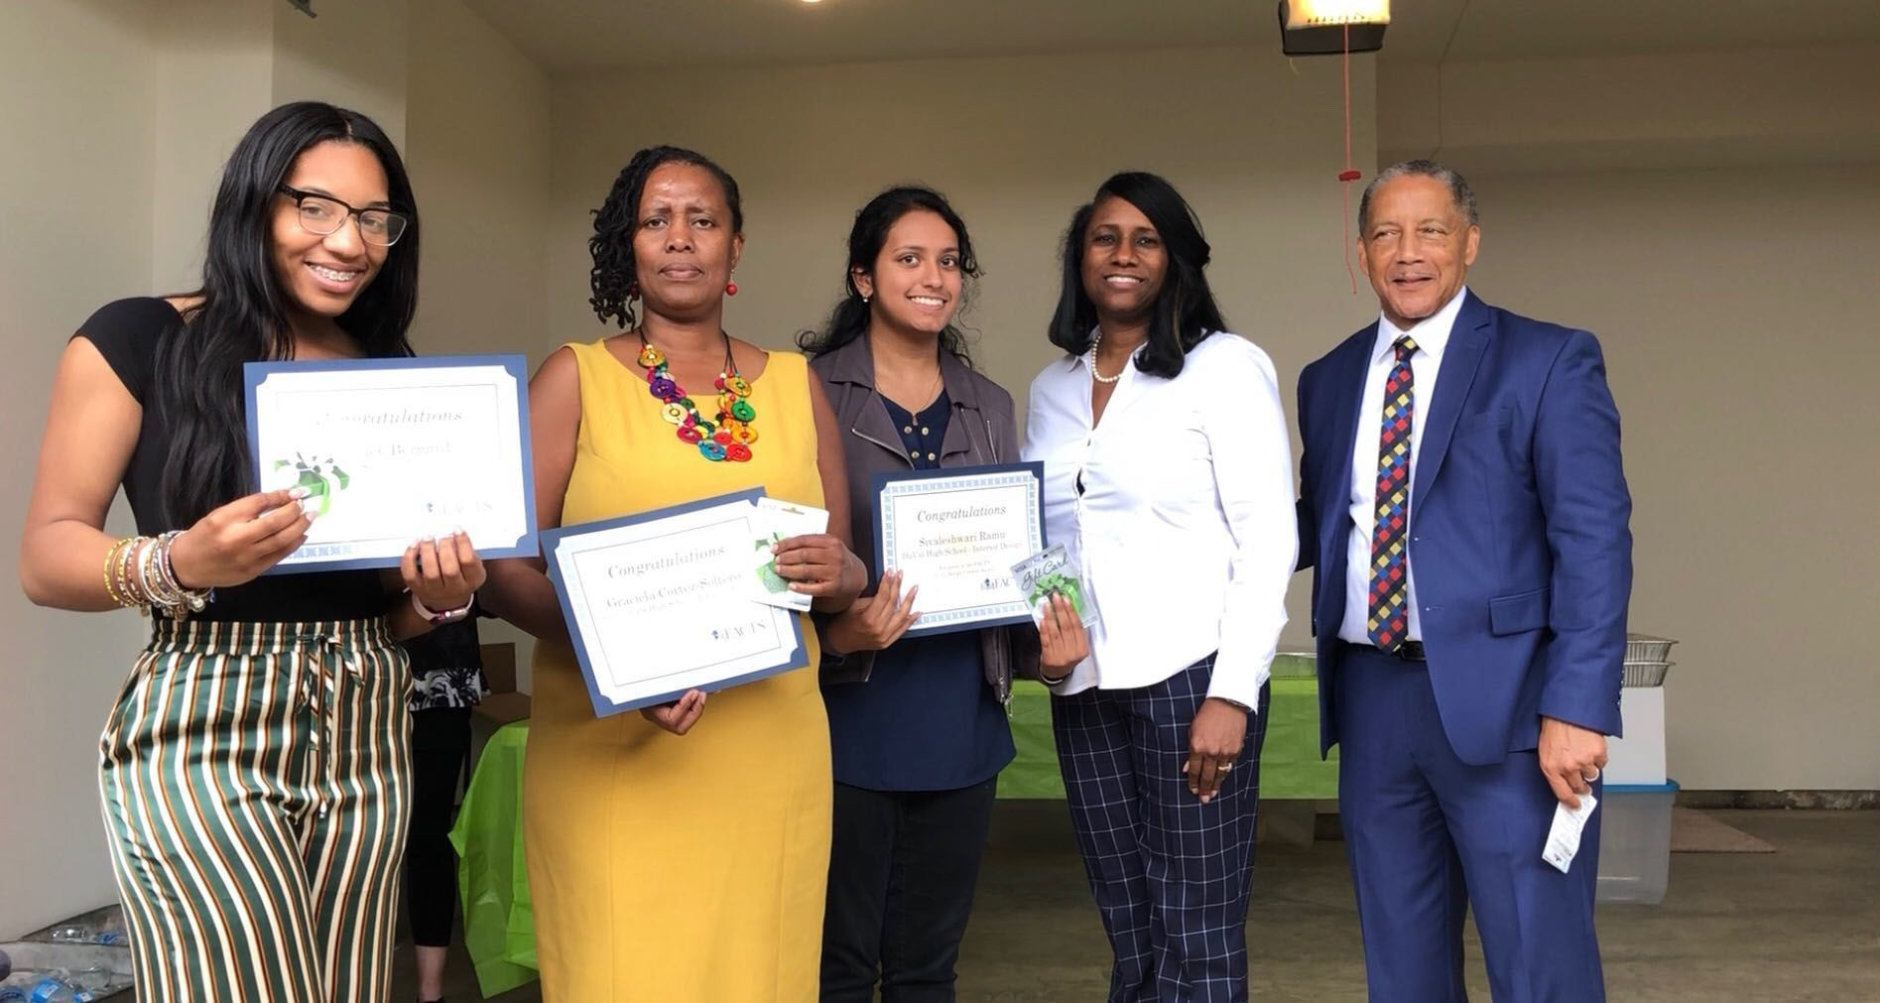 Sivaleshwsri Ramu, center, of Duval High School, was presented a $125 Design Contest Award. Also picured are dministrators who picked up awards for other students not in attendance. (WTOP/Kristi King)